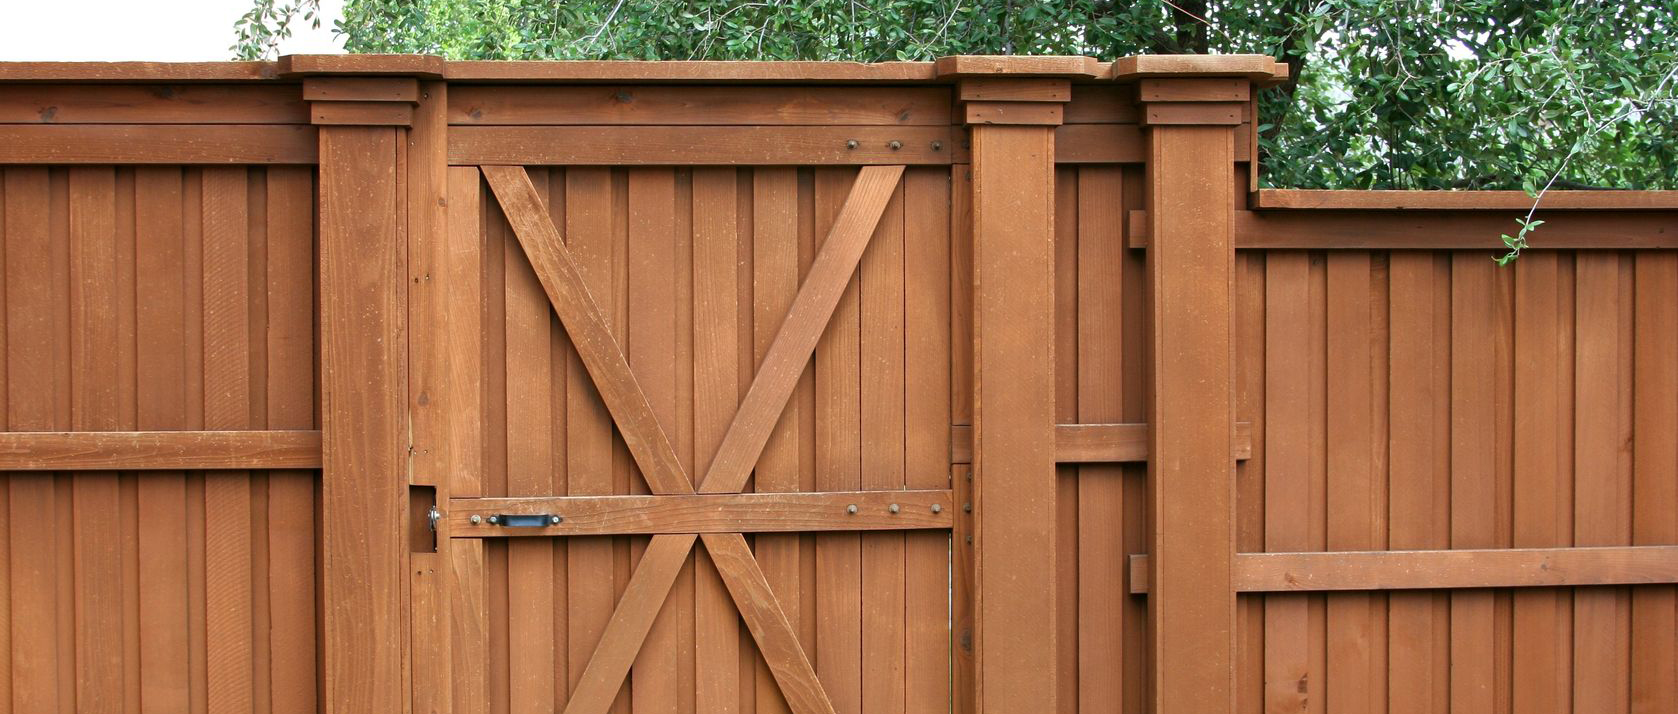 Wooden gated fence